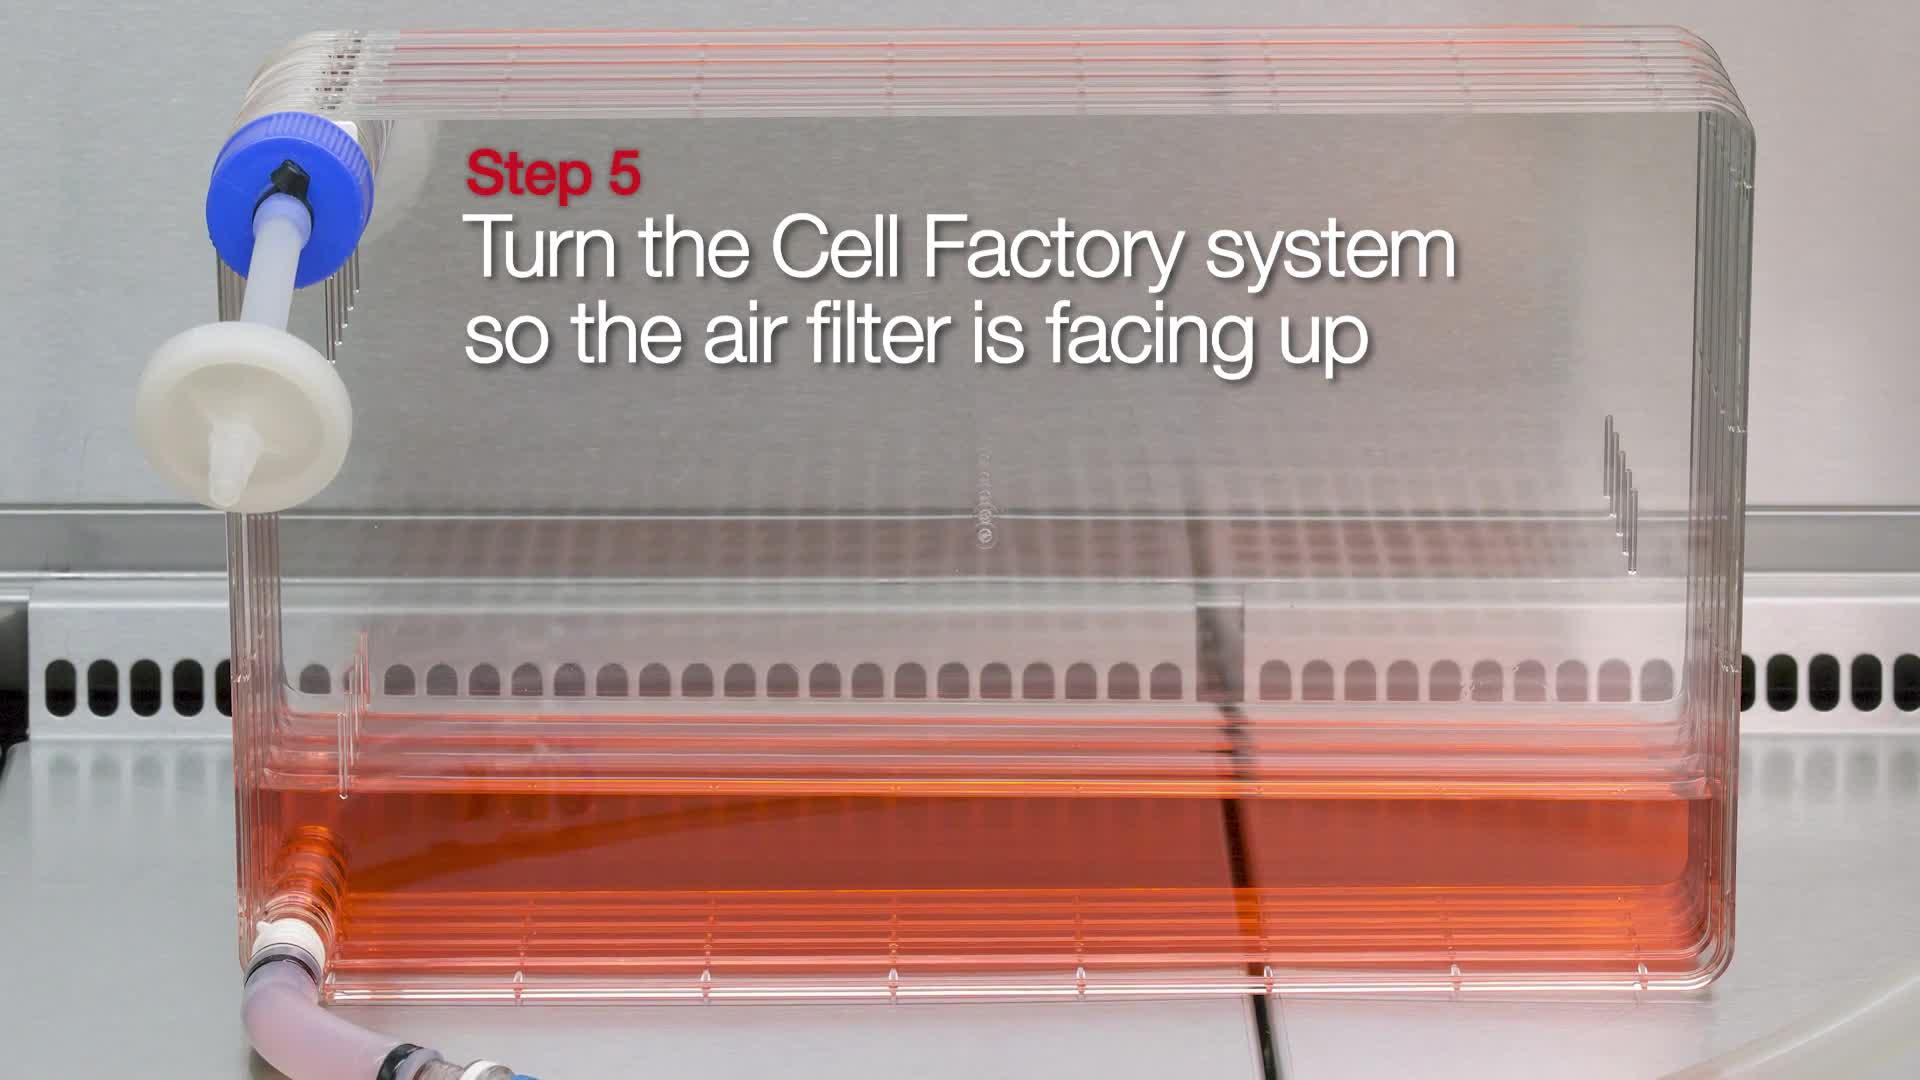 Nunc™ Cell Factory™ Systems